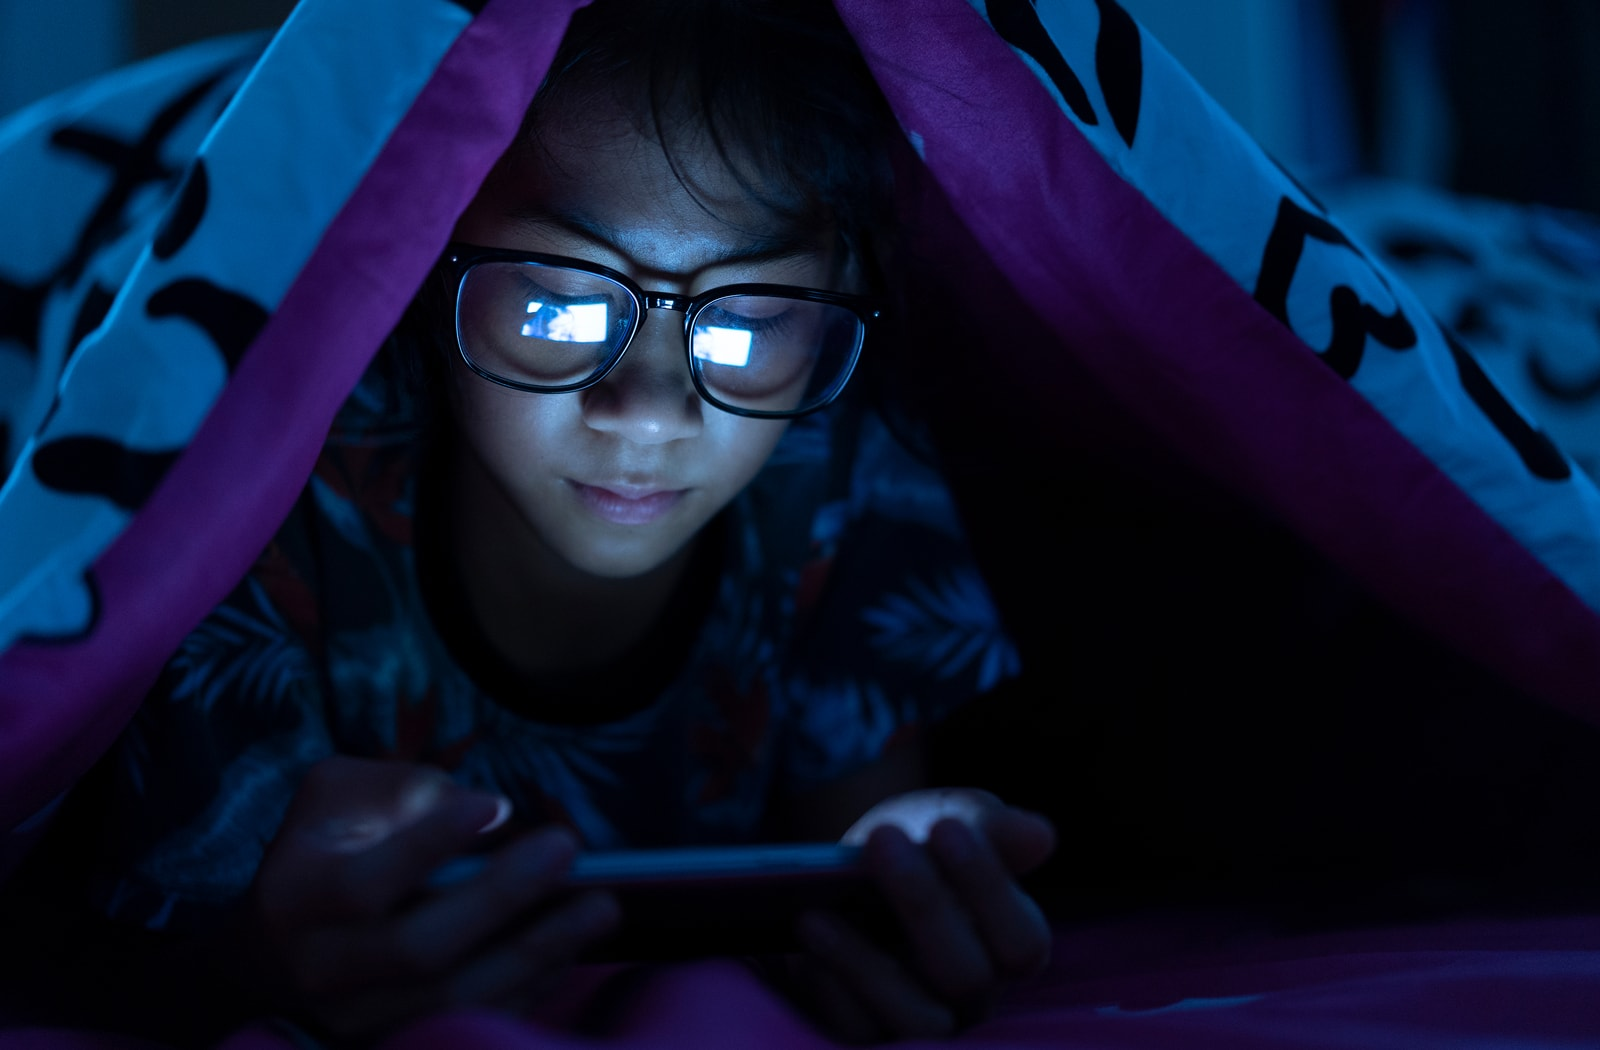 Child playing on phone under his blanket with blue light glasses on.